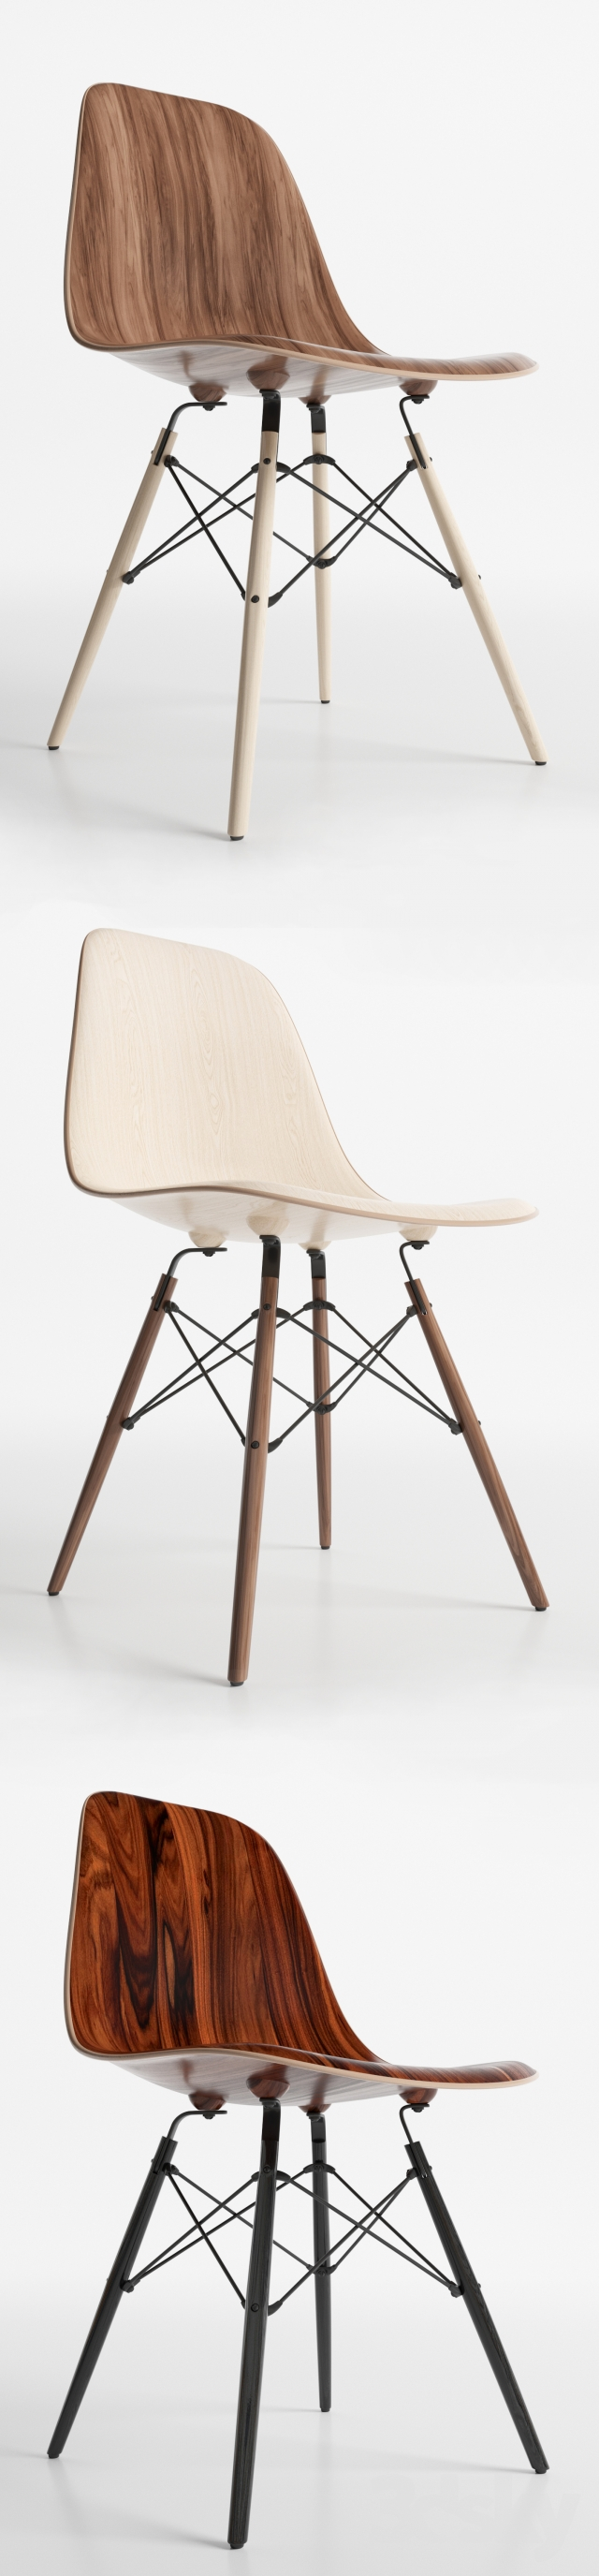 3d models chair eames dsw wood chairs for Eames wooden chair